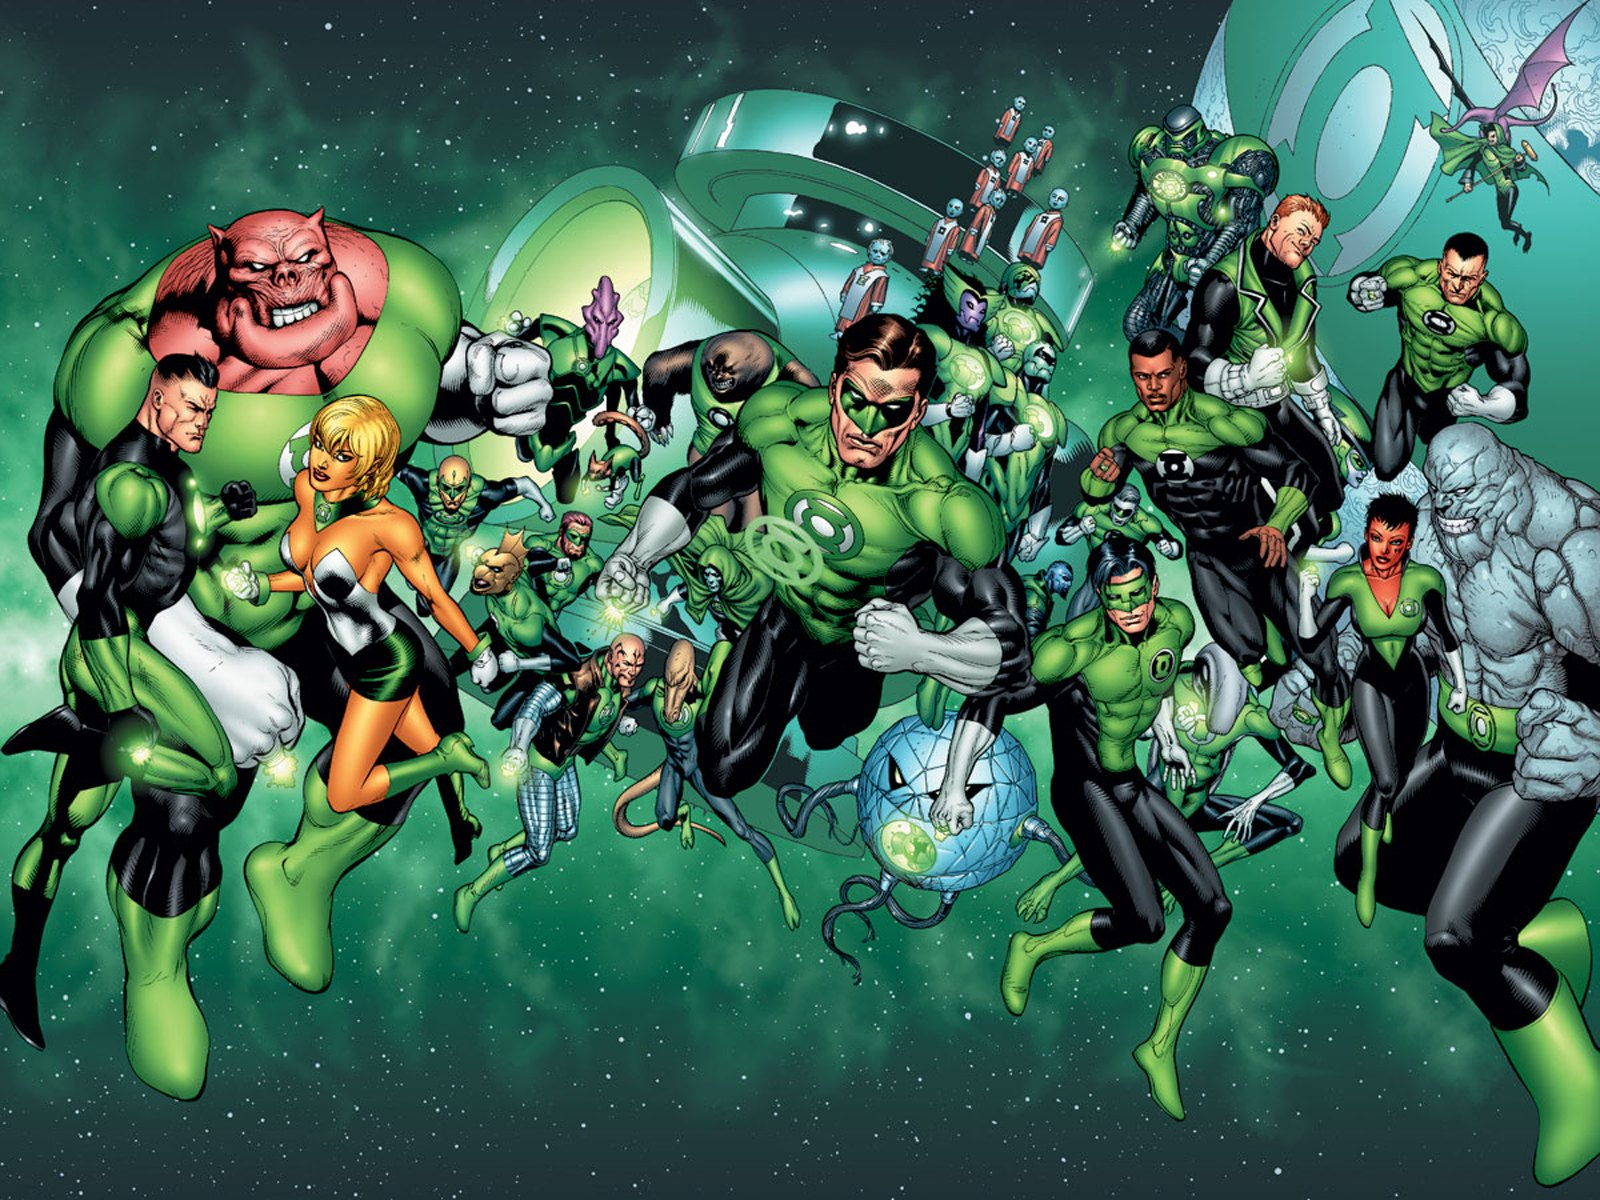 A Member of the Green Lantern Corps Might Show Up in JUSTICE LEAGUE